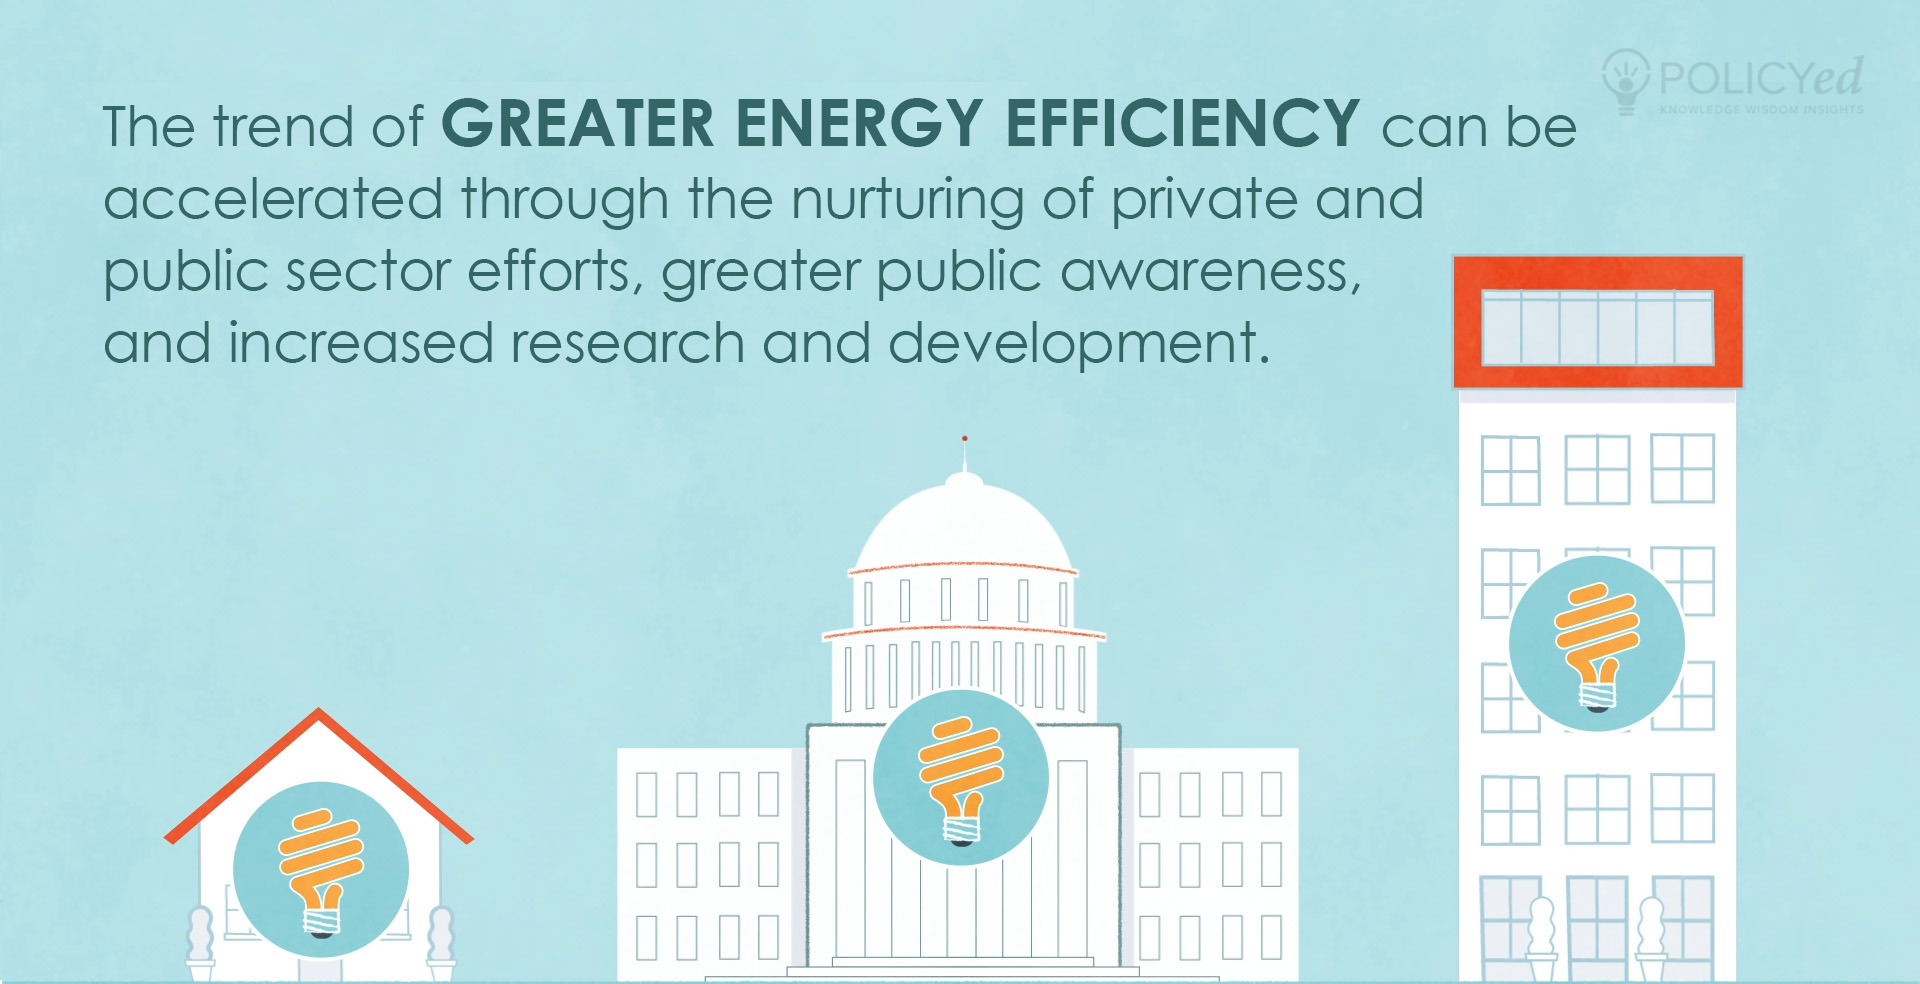 Key facts policyed for Energy efficiency facts